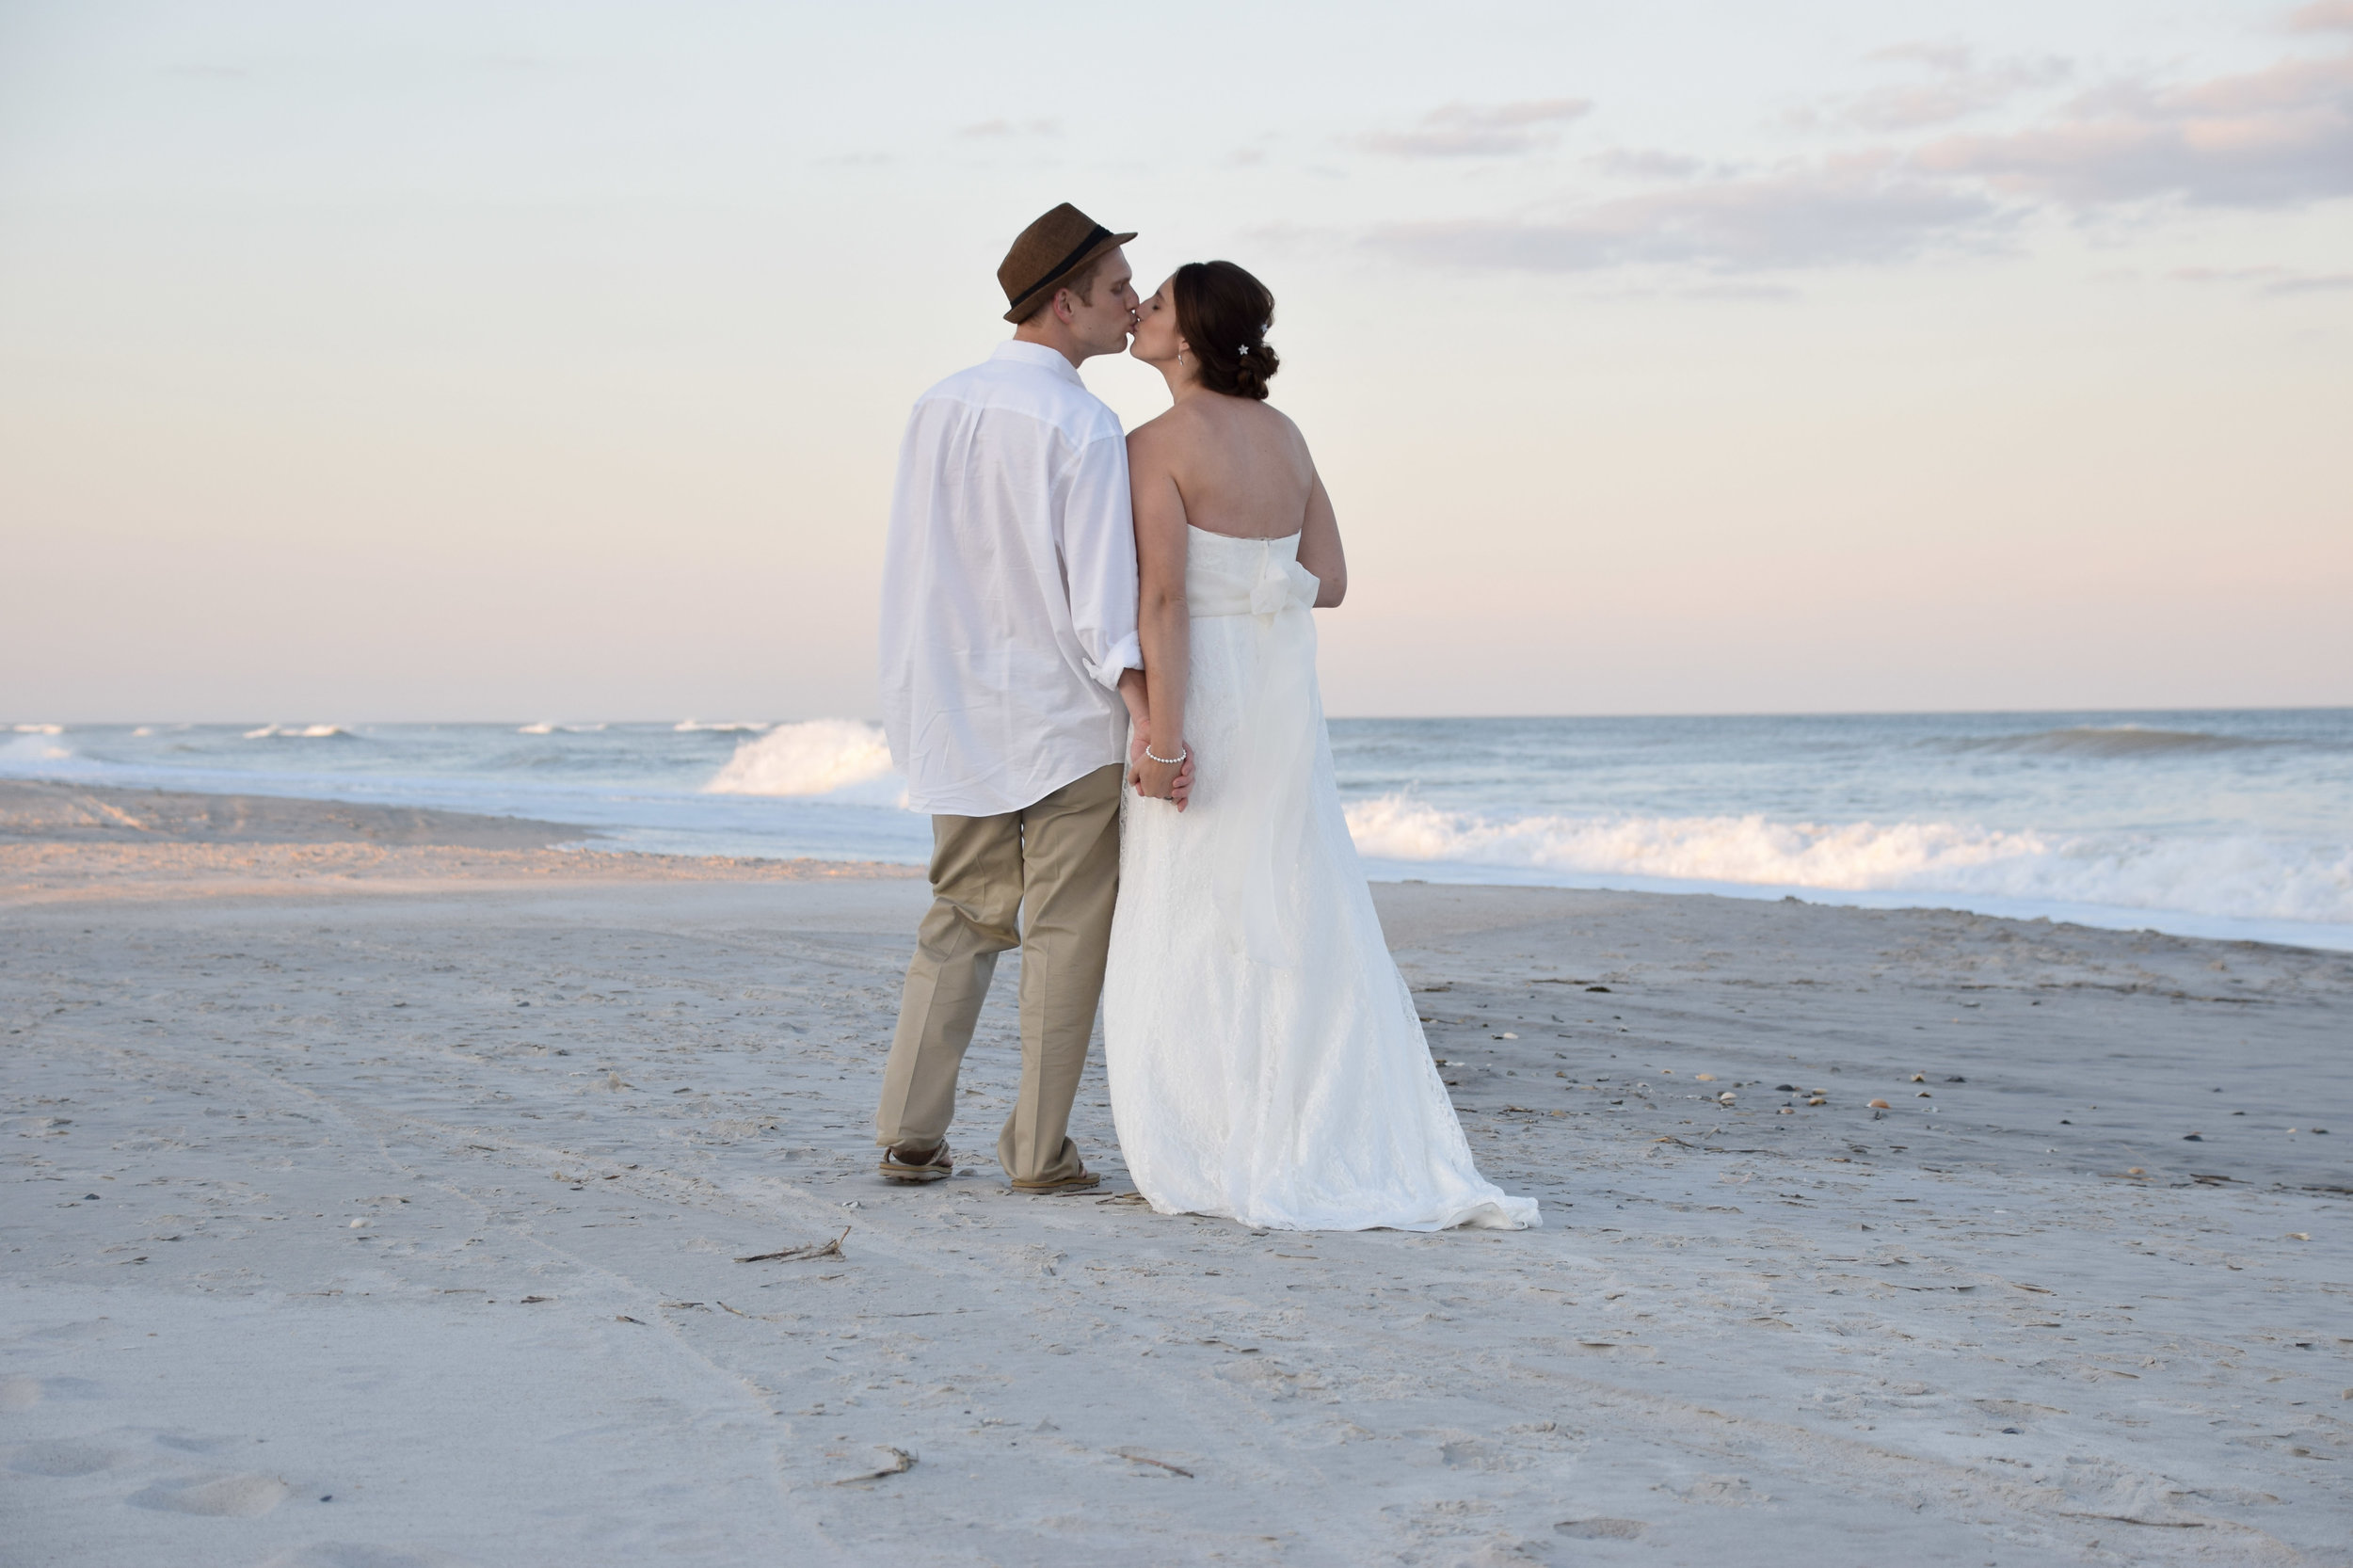 Bride and Groom walking on the beach pausing for a kiss.